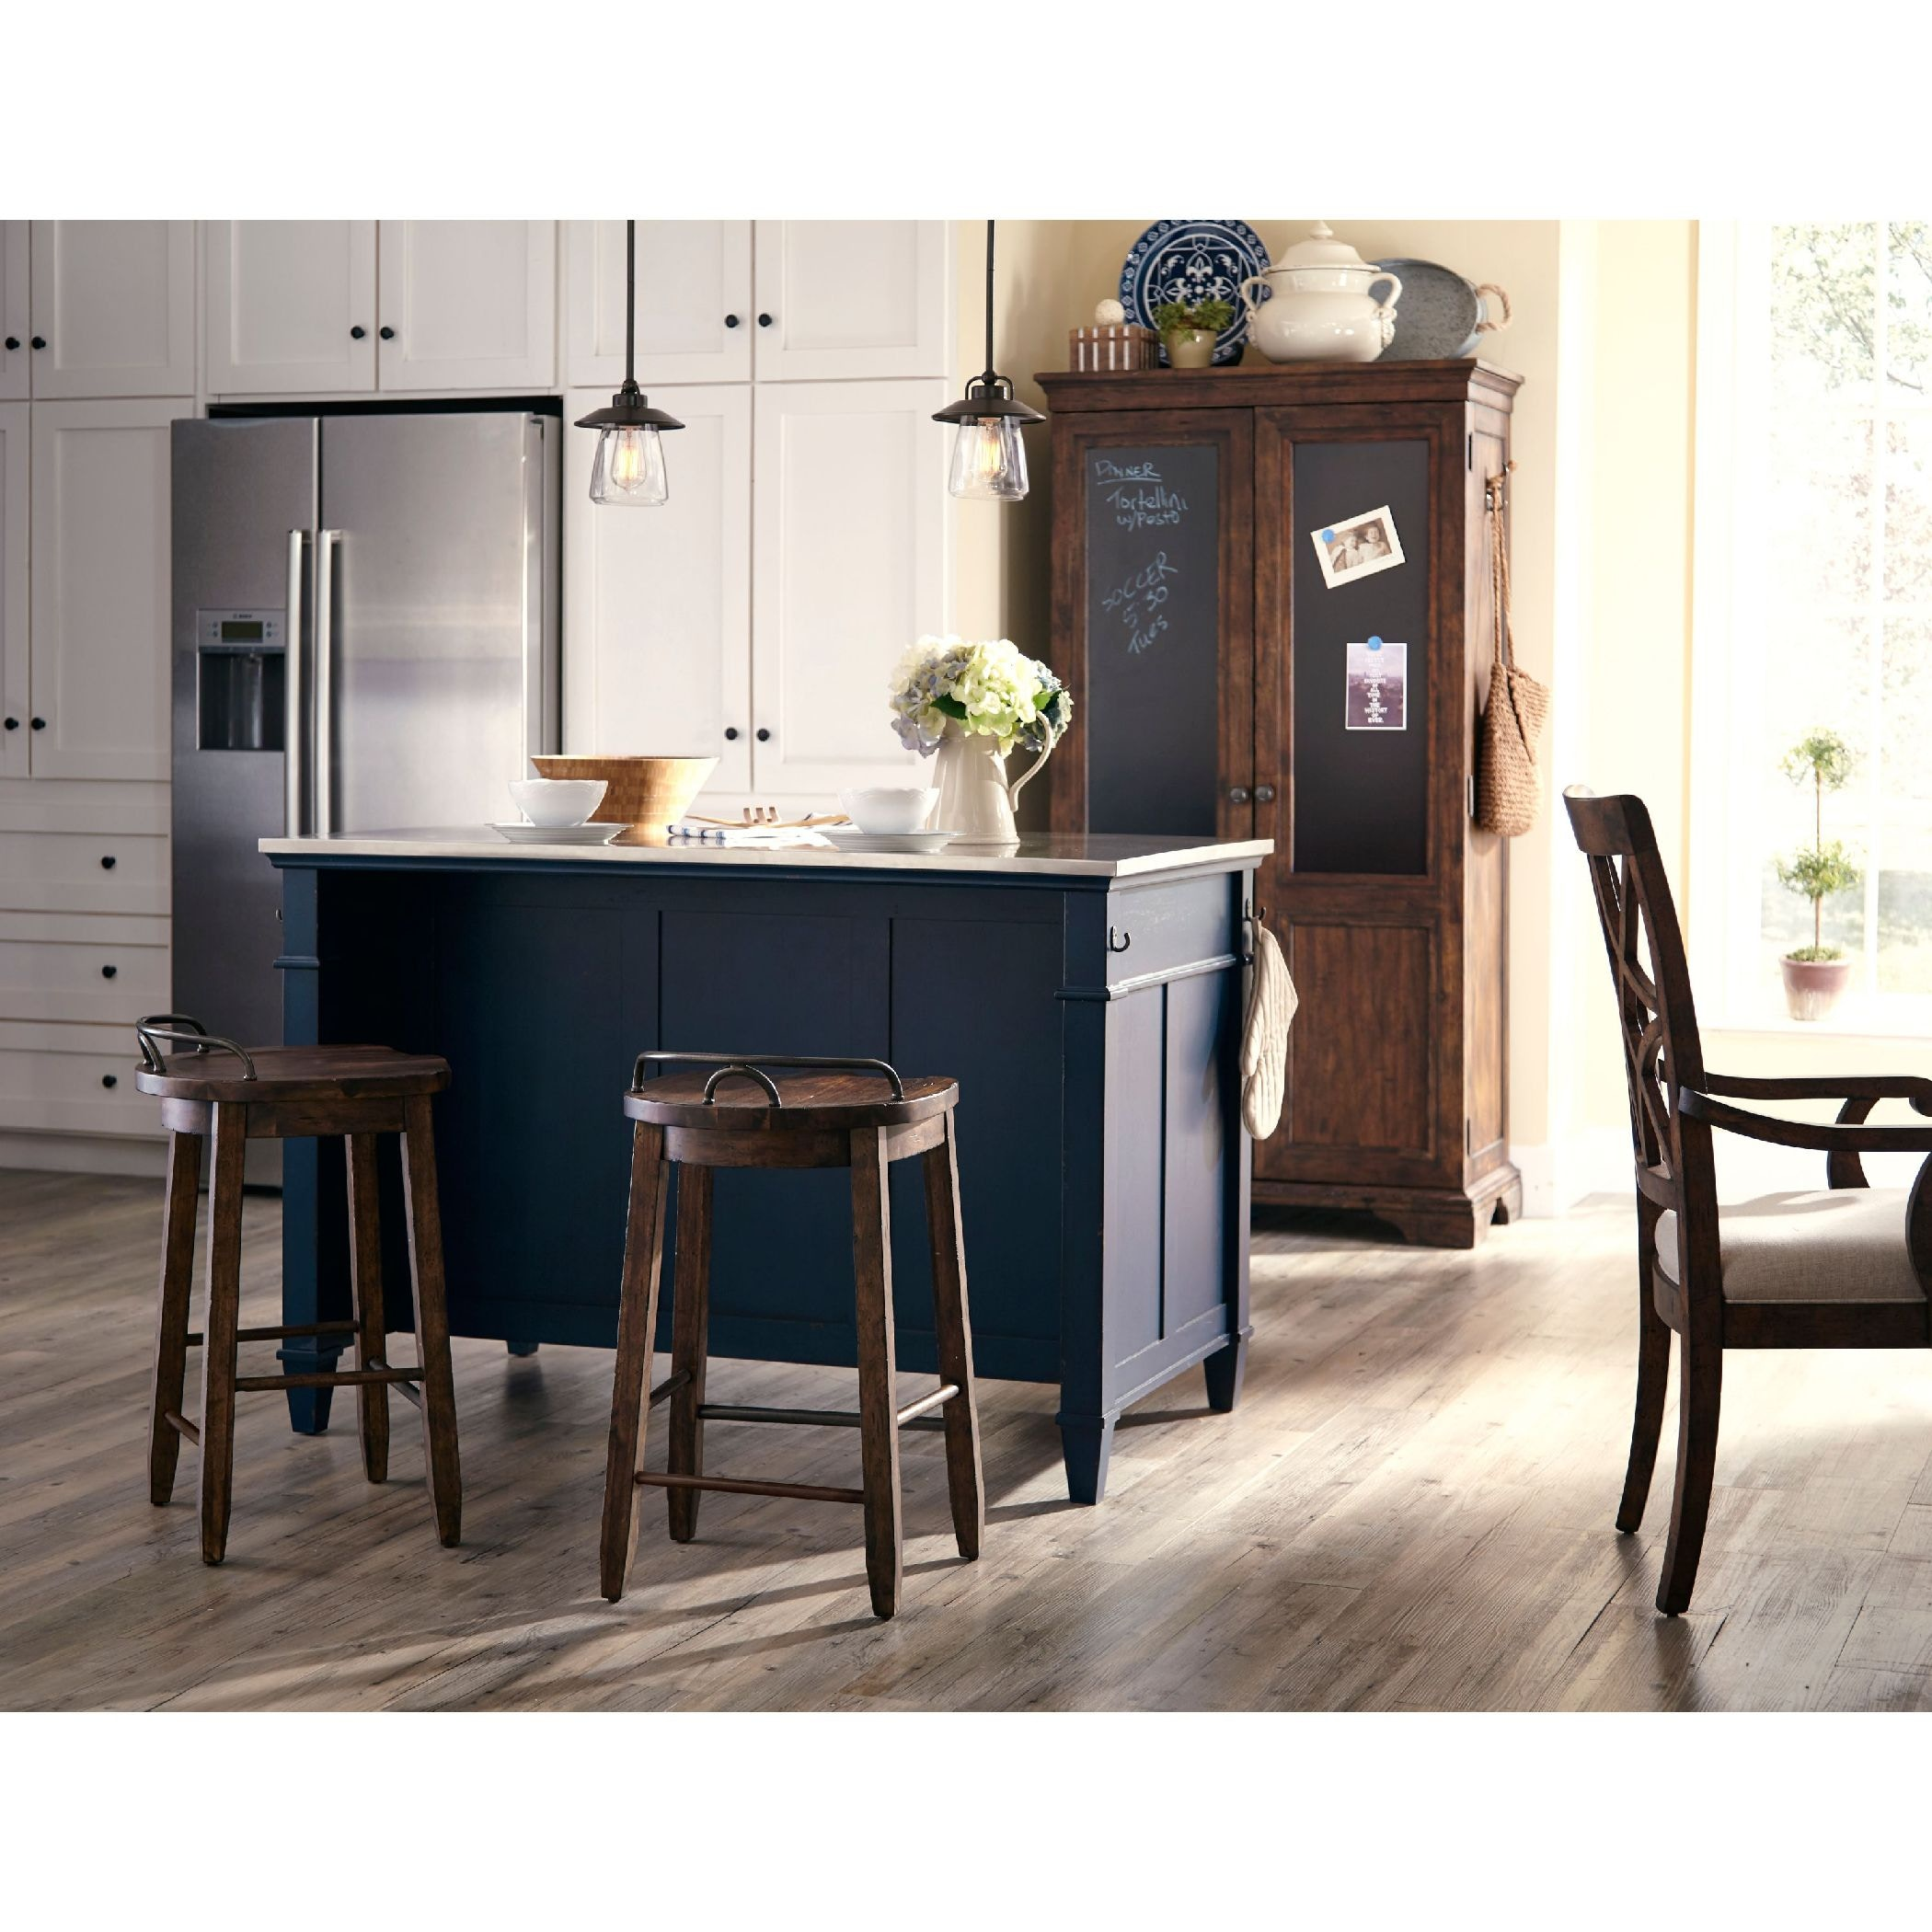 Trisha Yearwood   Miss Yearwood Kitchen Island   BLUE KT:45856